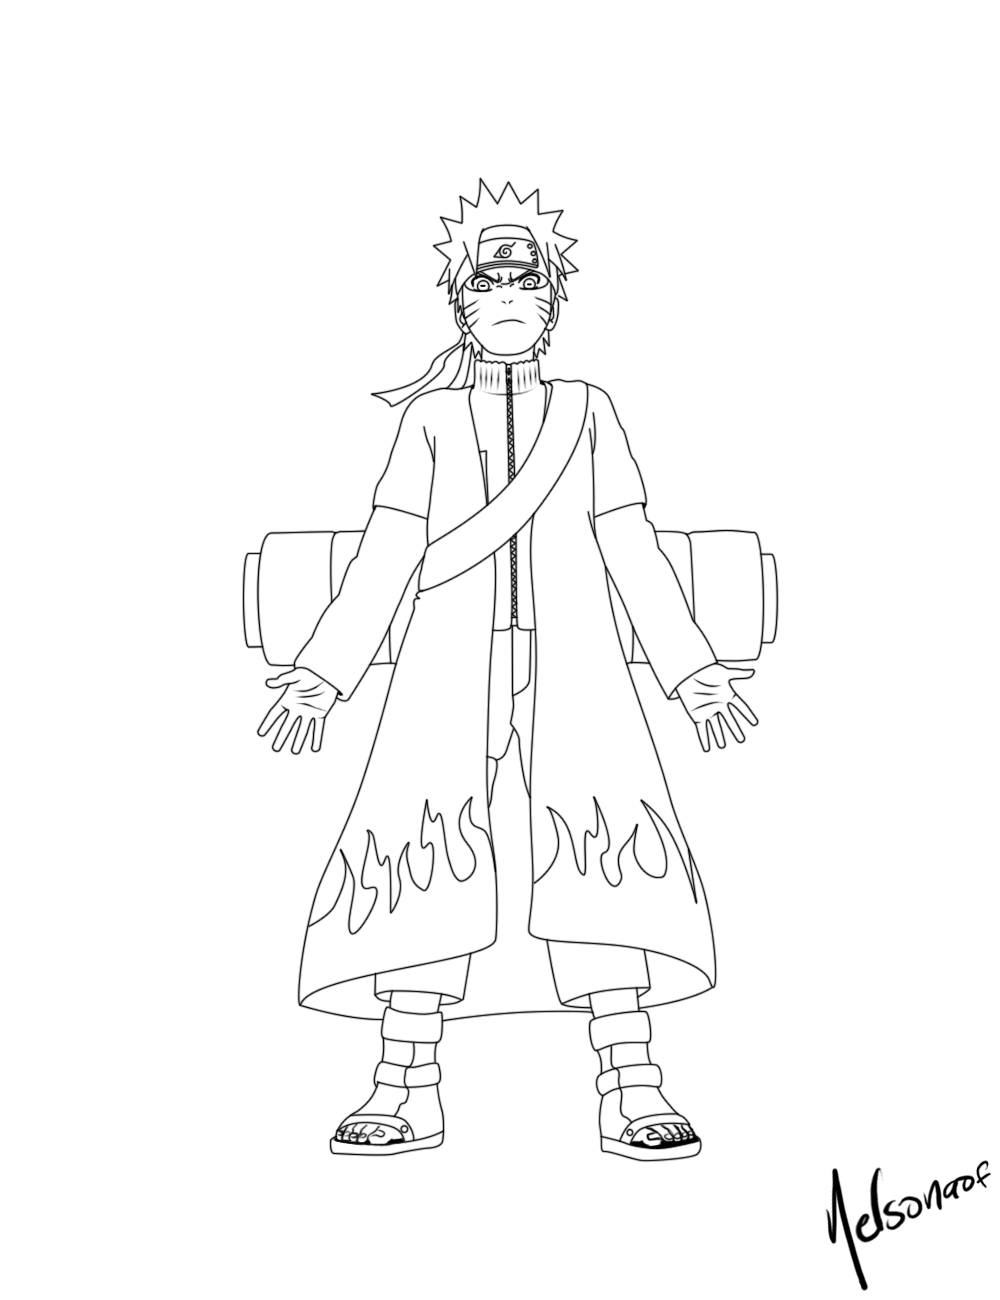 naruto shippuden coloring book naruto shippuden coloring pages to download and print for free book coloring naruto shippuden